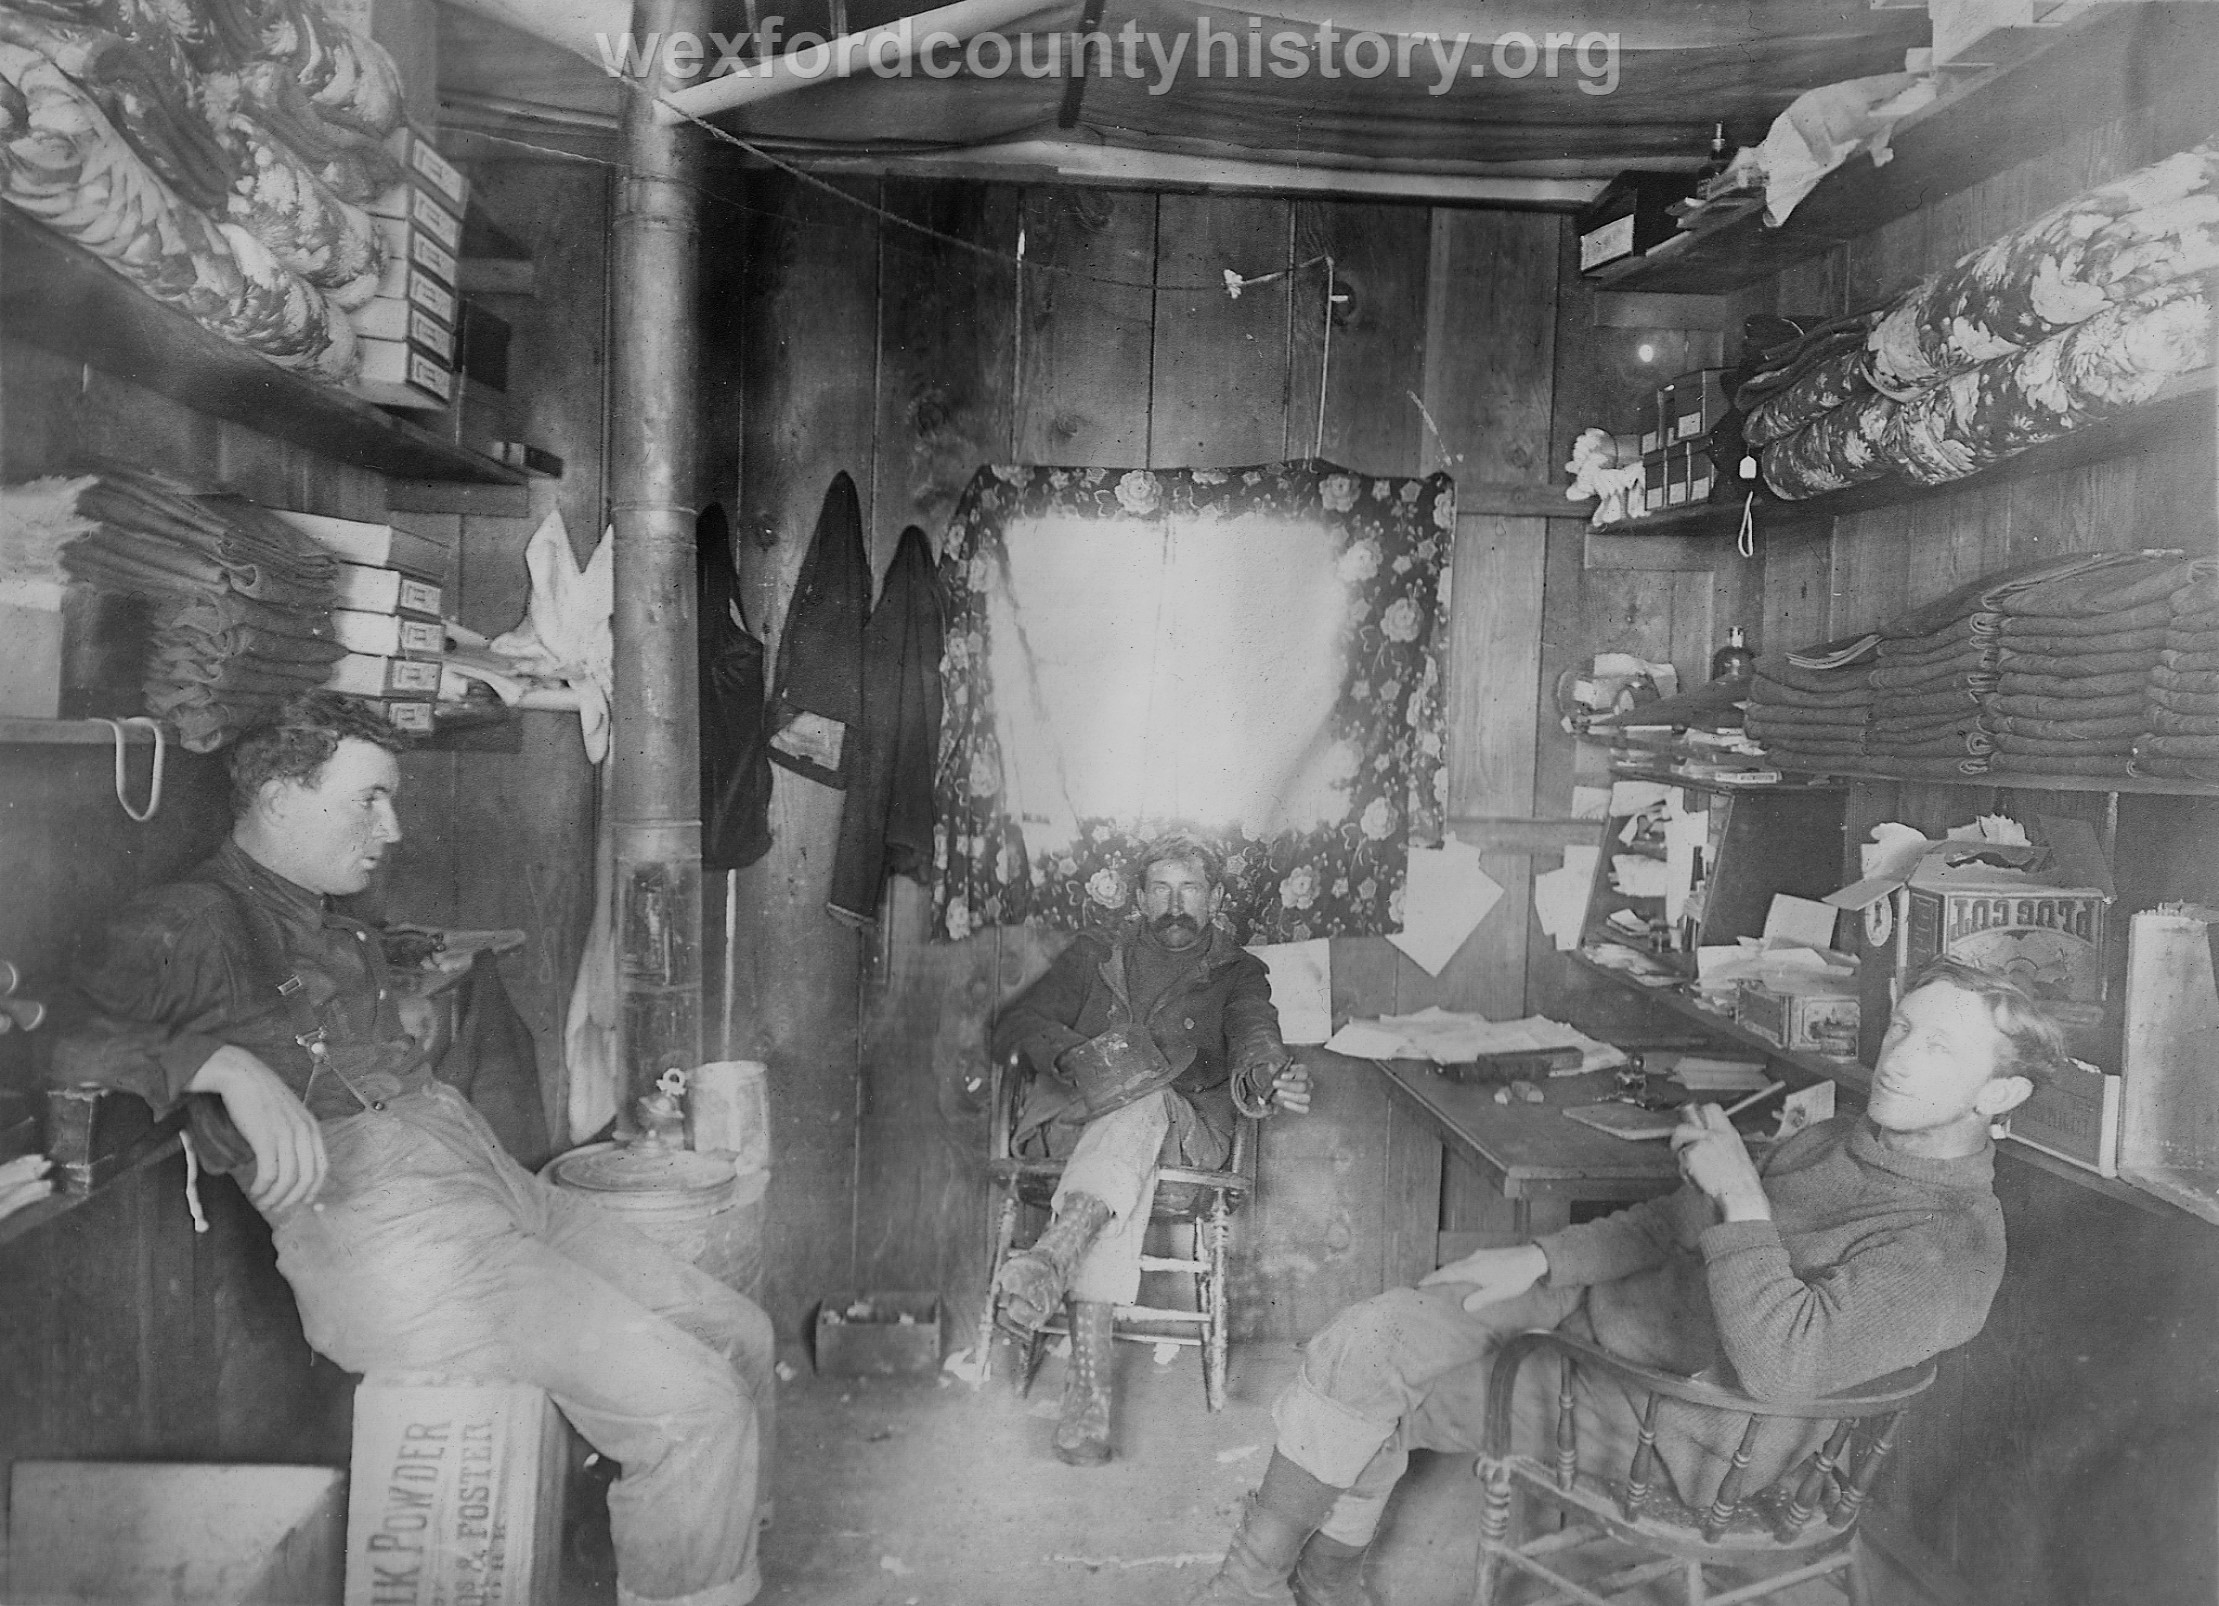 Wexford-County-Lumber-Timber-Harvest-Circa-1890s-19